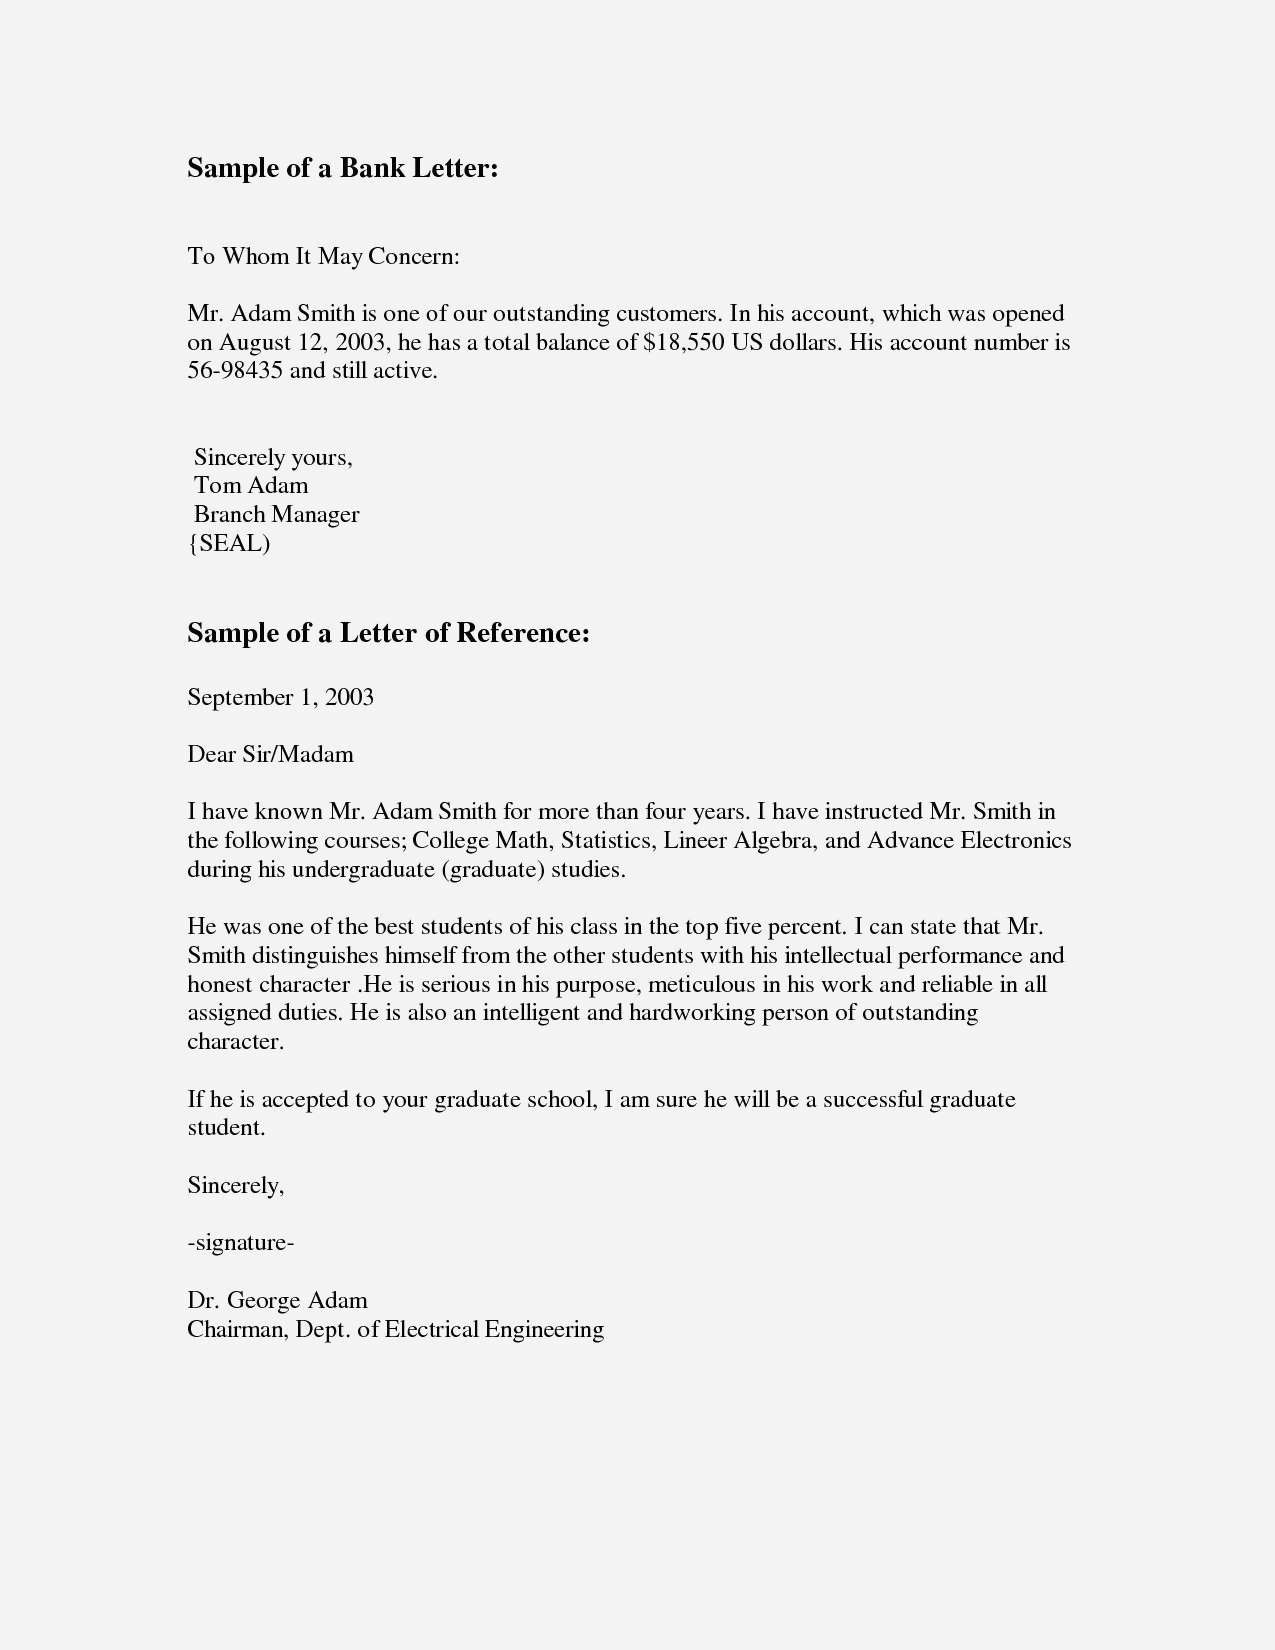 letter of reccommendation template Collection-Formal Letter Template Unique bylaws Template 0d Wallpapers 50 ficial Letter Template 10-t